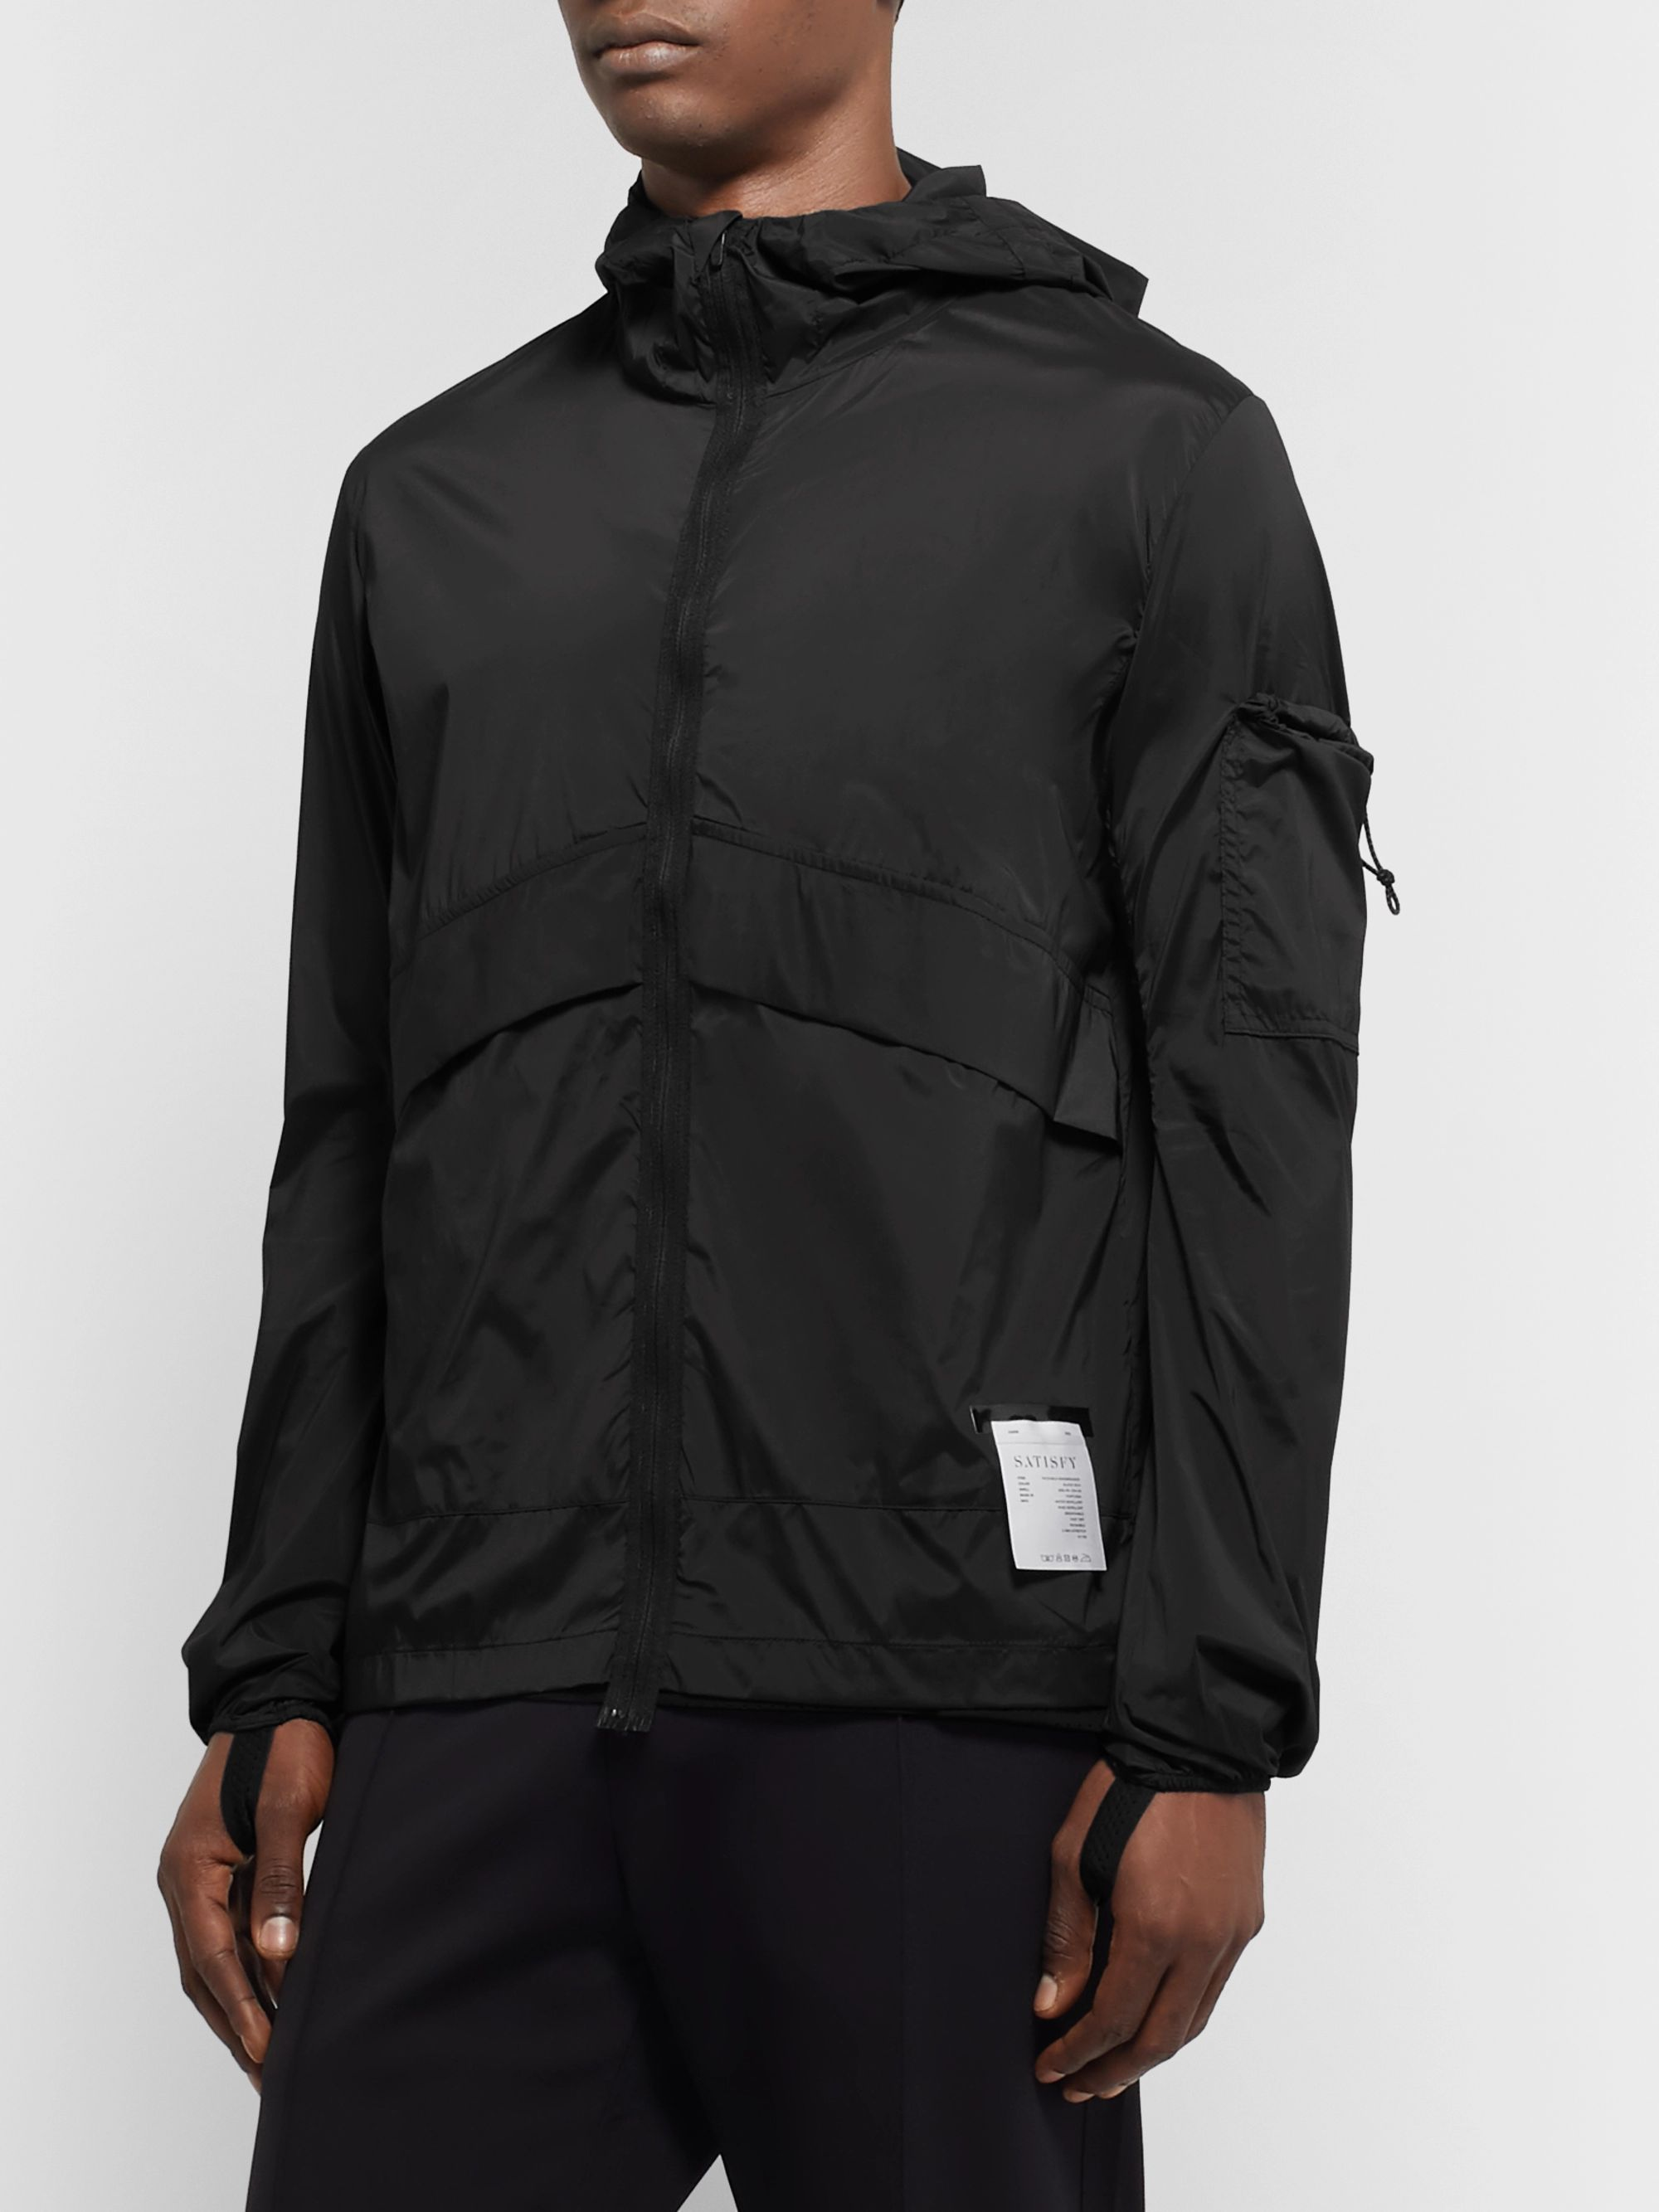 Satisfy Packable Shell Jacket